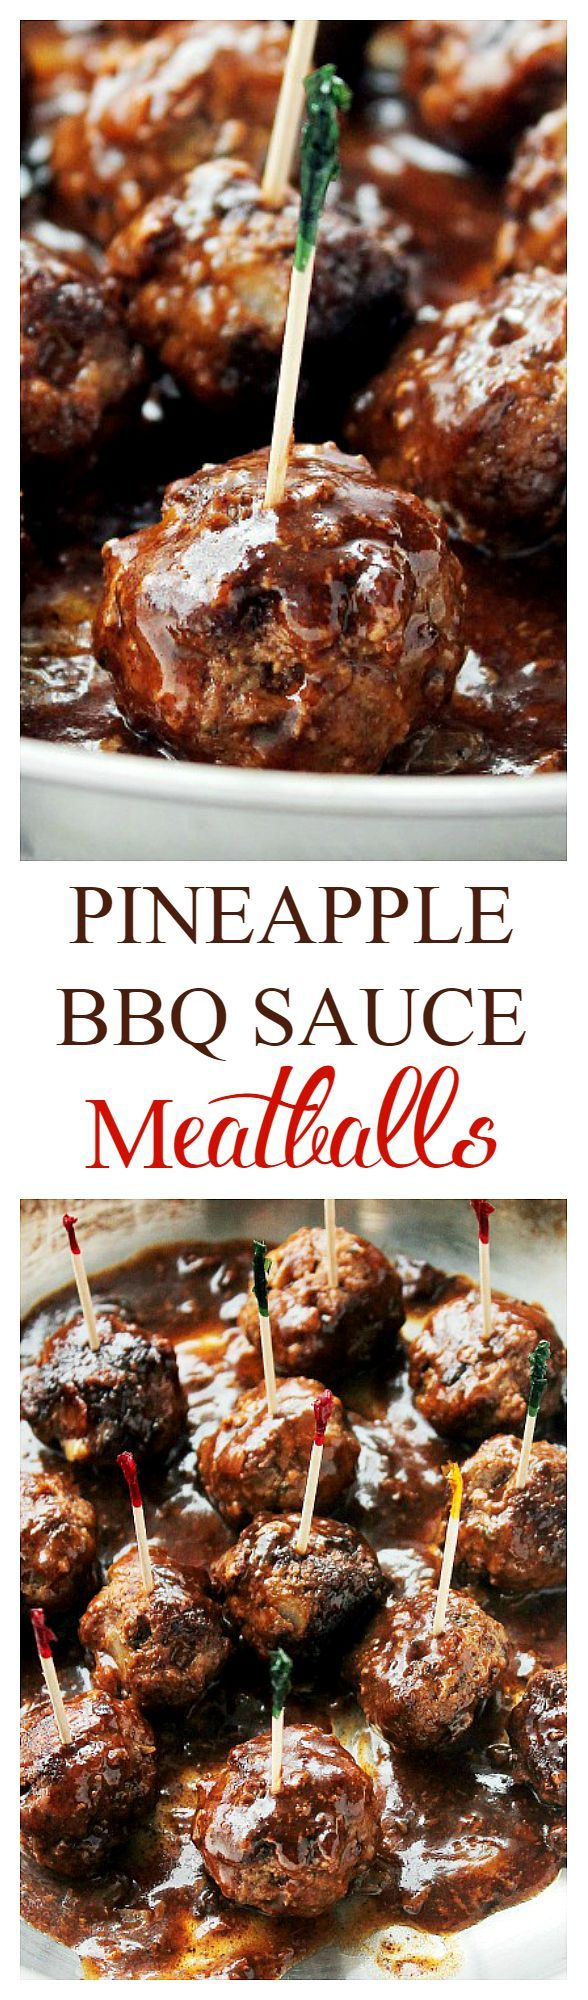 Pineapple Barbecue Sauce Glazed Meatballs - Delicious, juicy, homemade Meatballs prepared with a sweet and tangy Pineapple Barbecue Sauce.